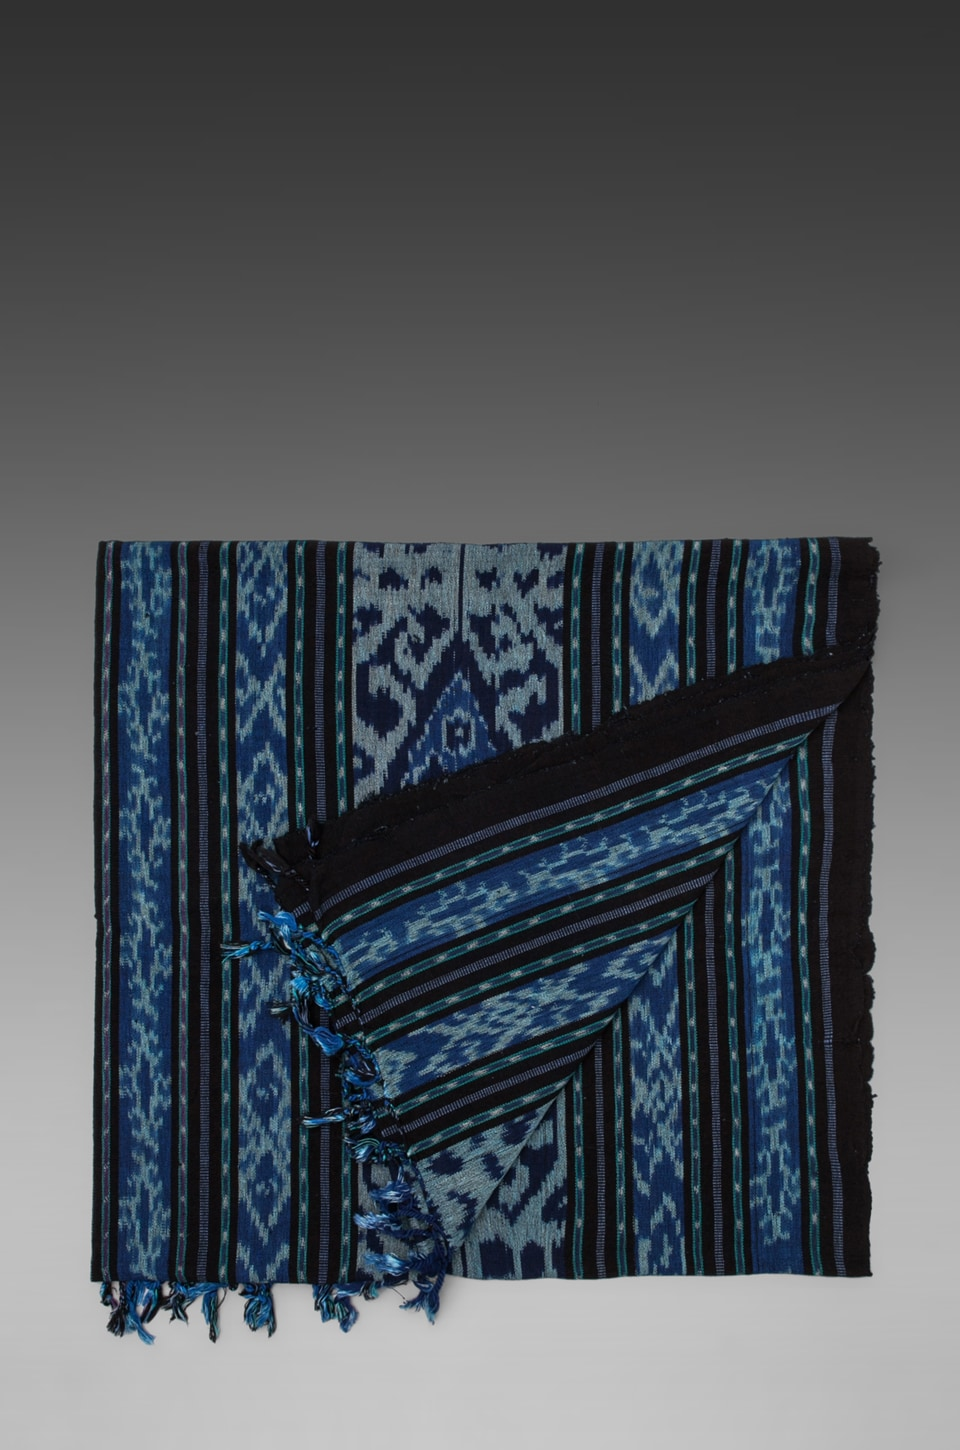 Indah Sumatra Hand Woven Beach Blanket in Blue